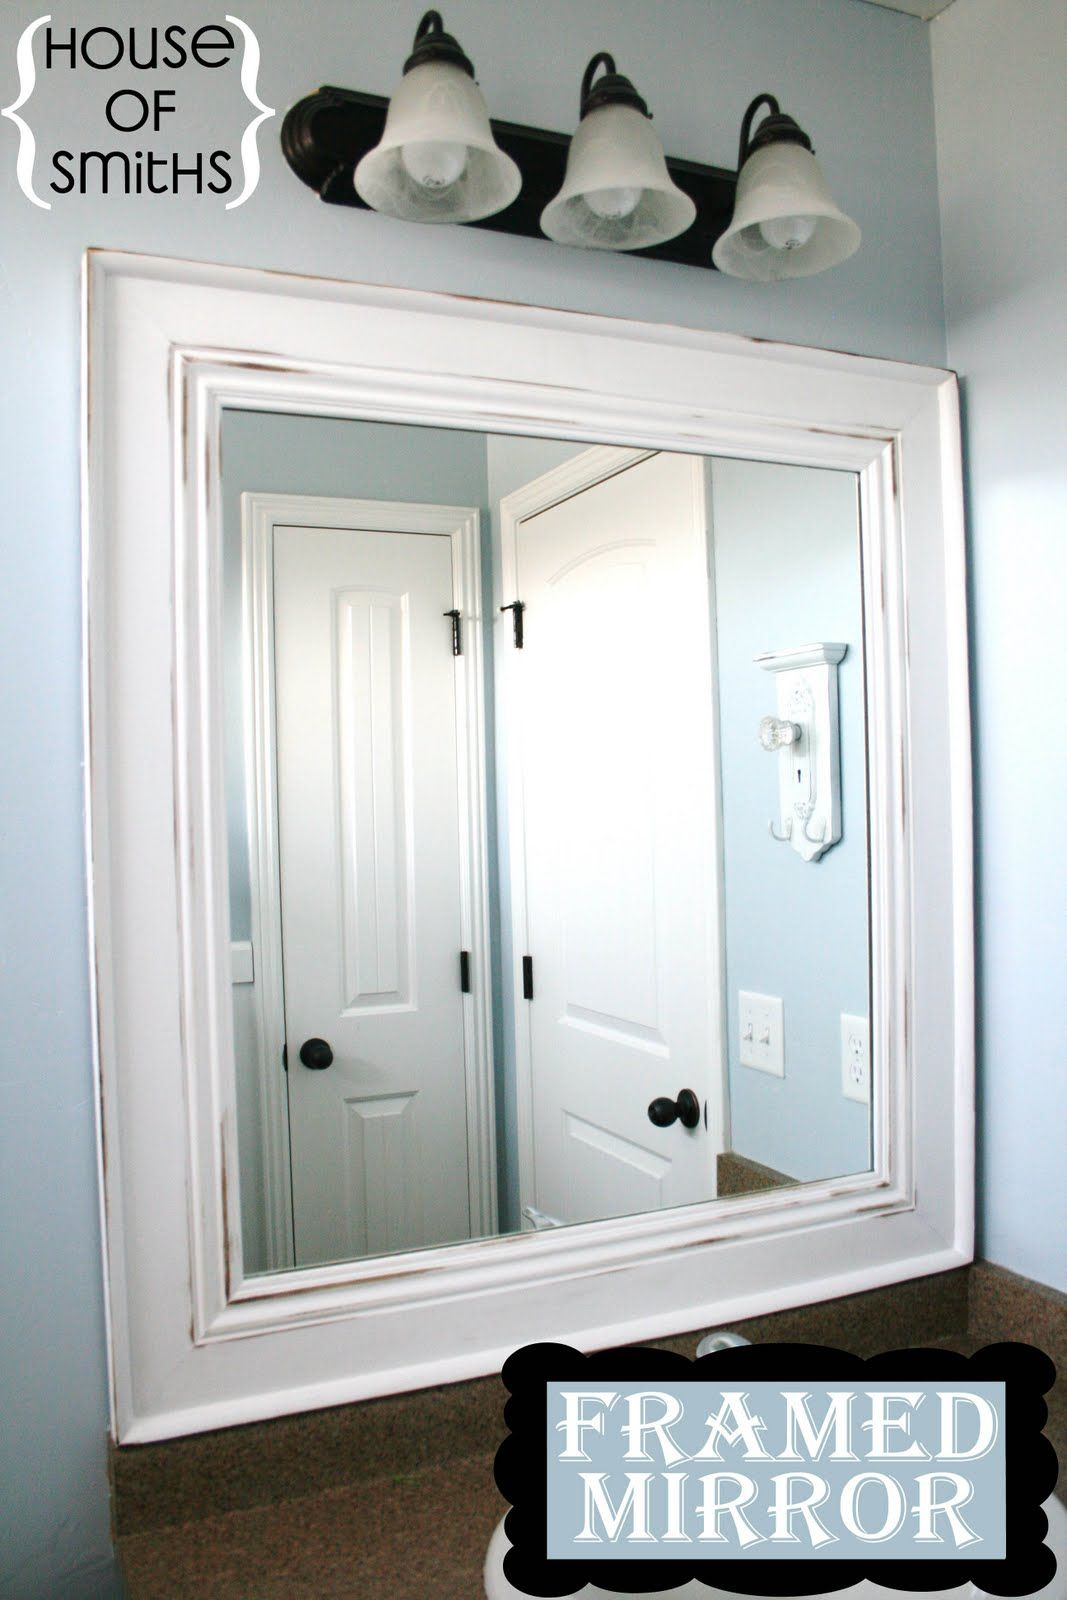 Framing Bathroom Mirror Over Metal Clips diy framed mirror tutorial~ thick baseboard (i think it was about